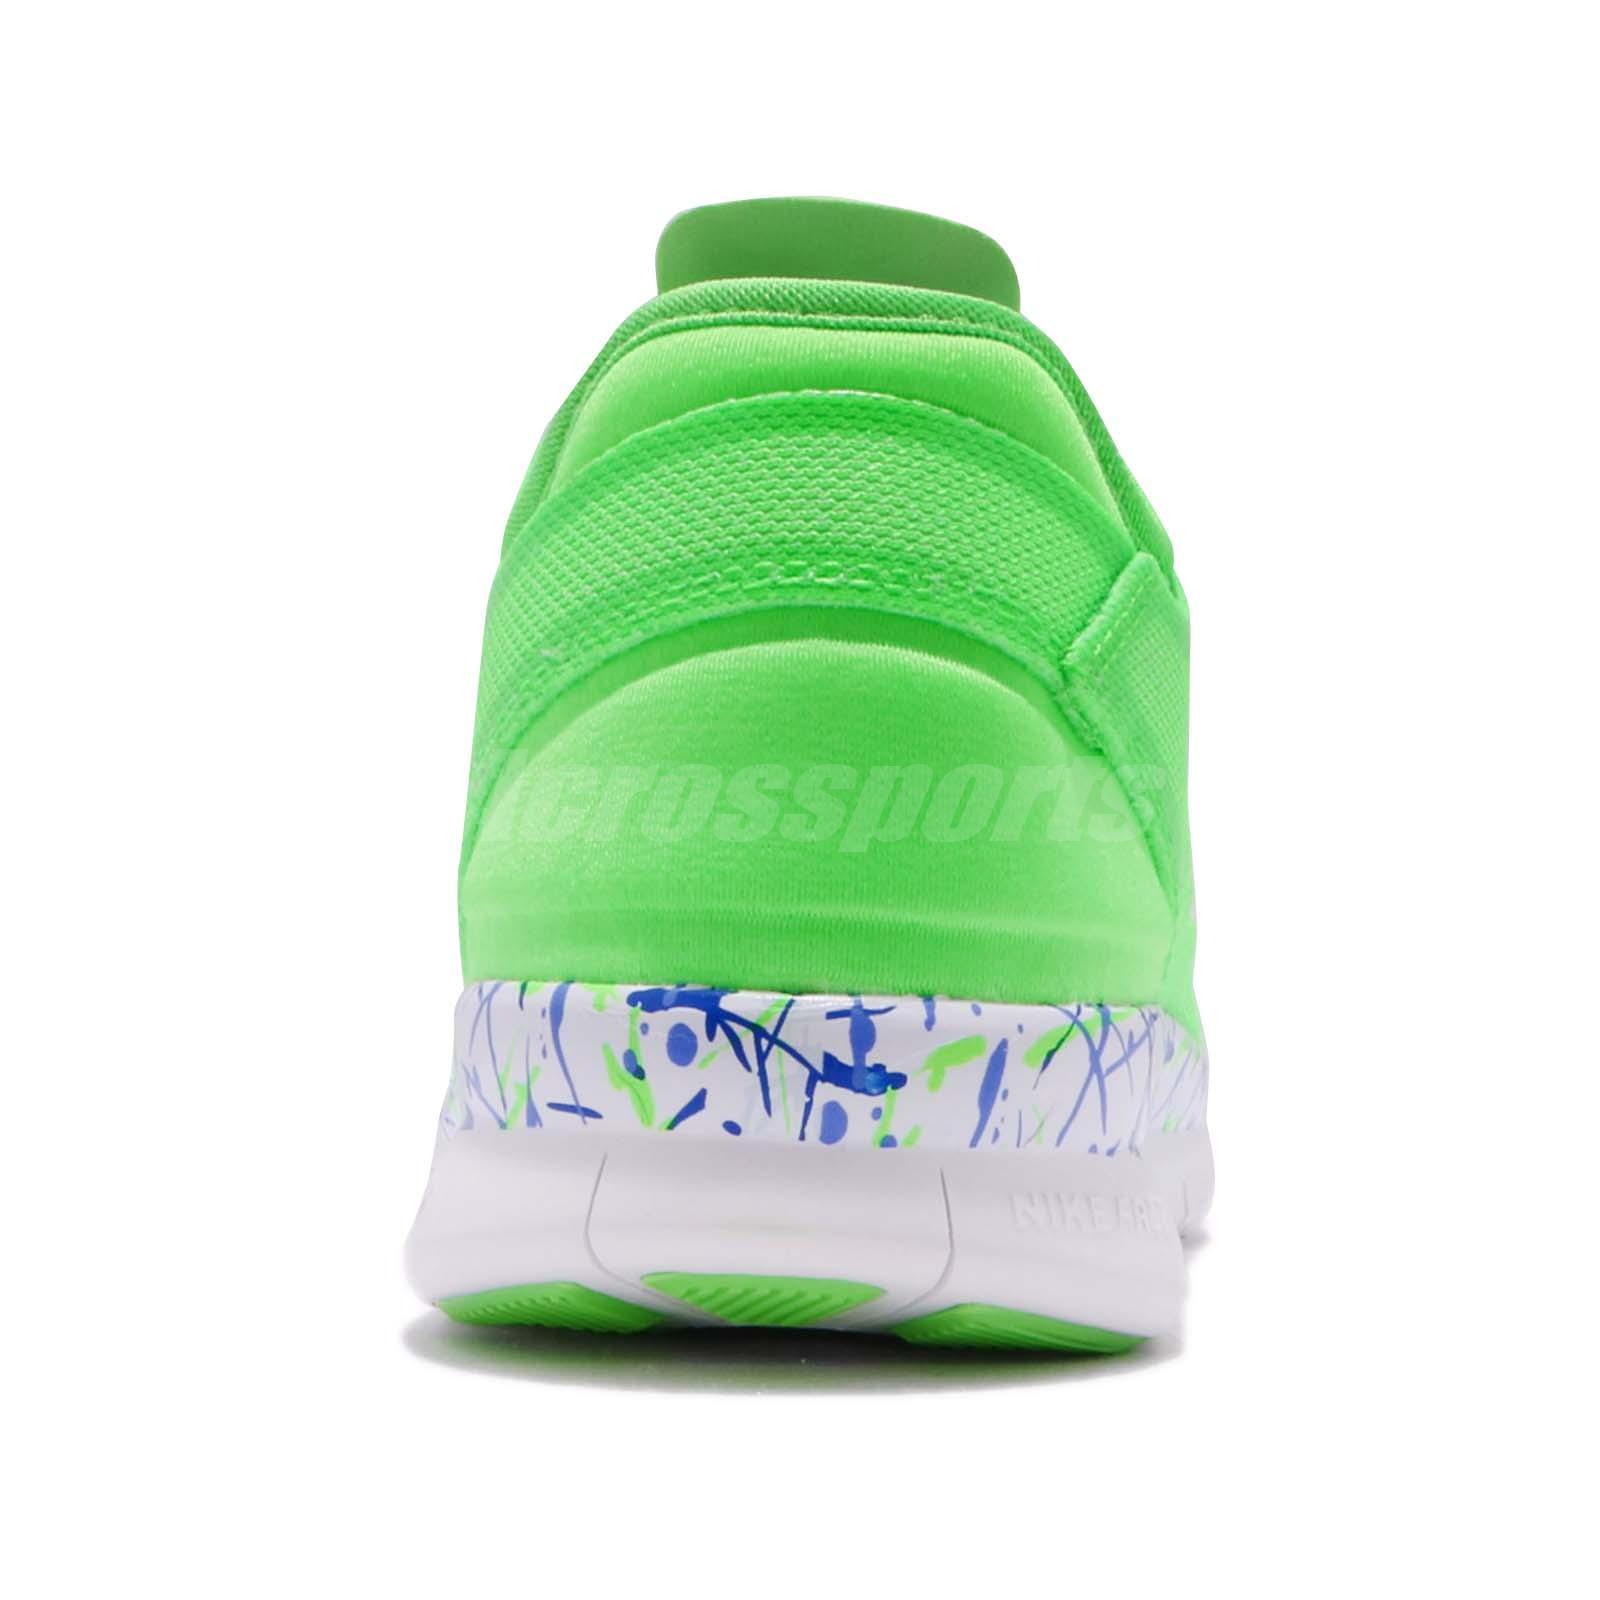 27a07890d540f Nike Wmns Free 5.0 TR Fit 5 PRT Voltage Green Women Training ...